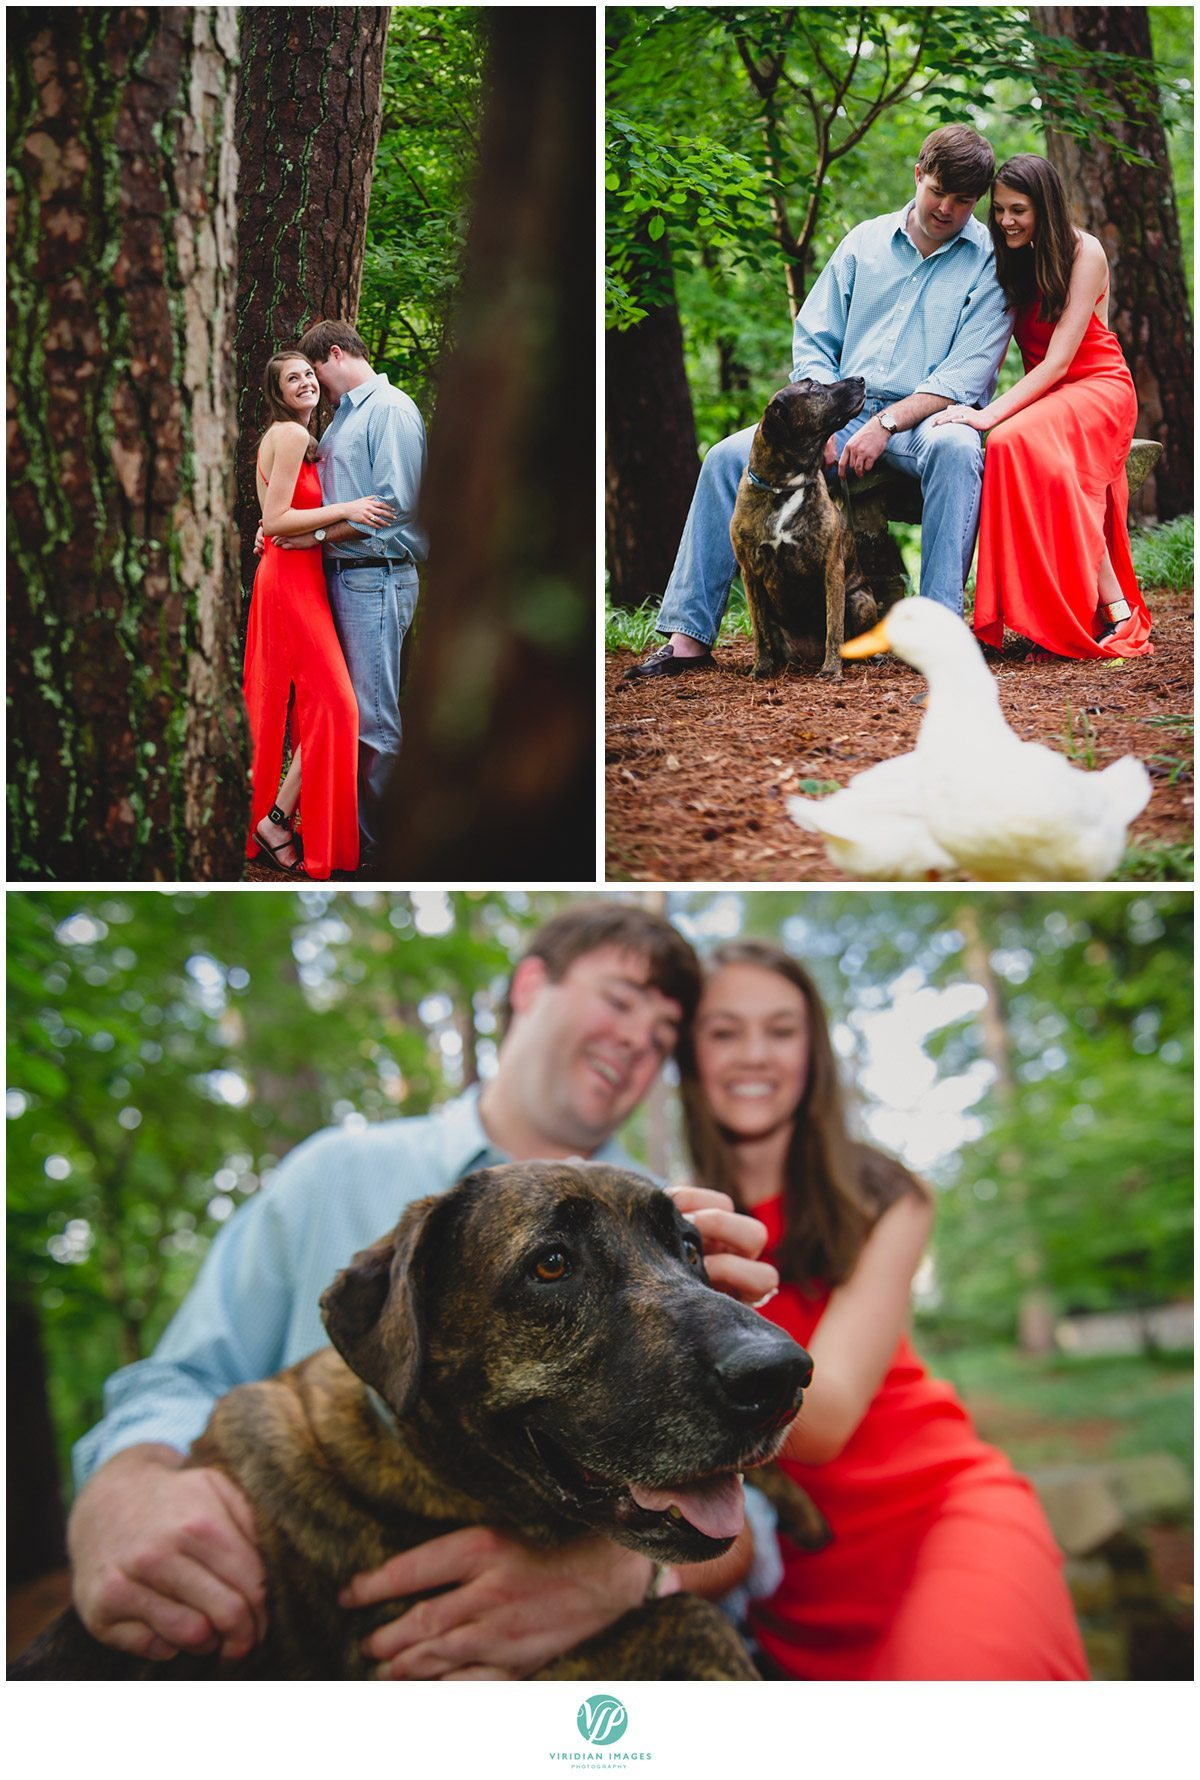 Atlanta-duck-poind-engagement-session-viridian-images-photography-photo-17